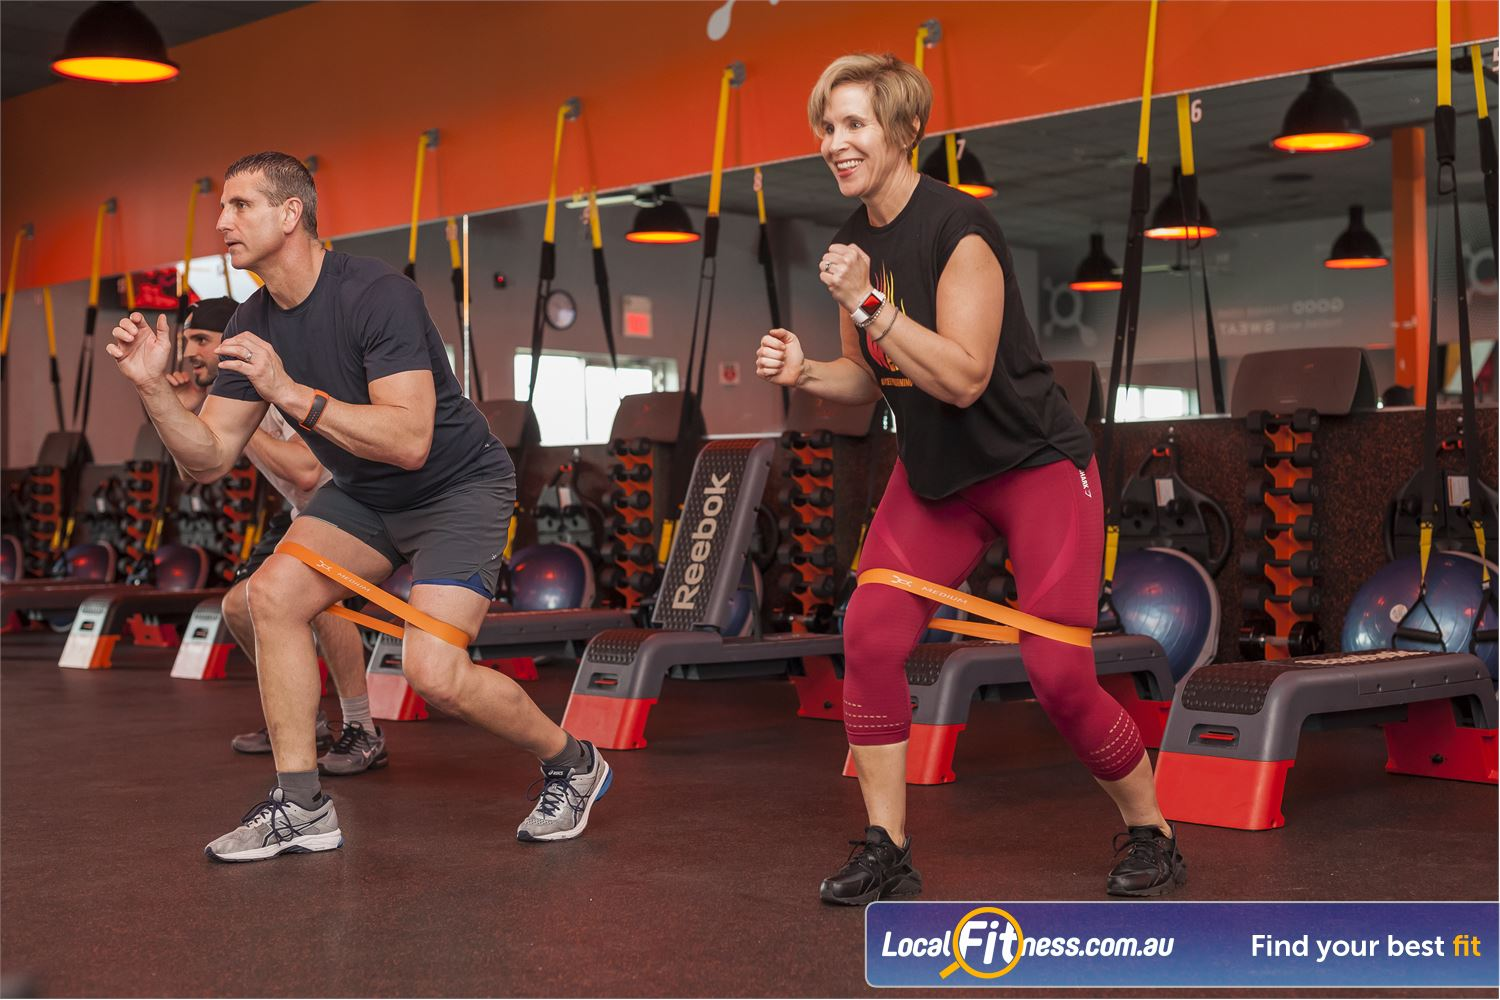 Orangetheory Fitness Hawthorn Orangetheory provides group personal training in Hawthorn.